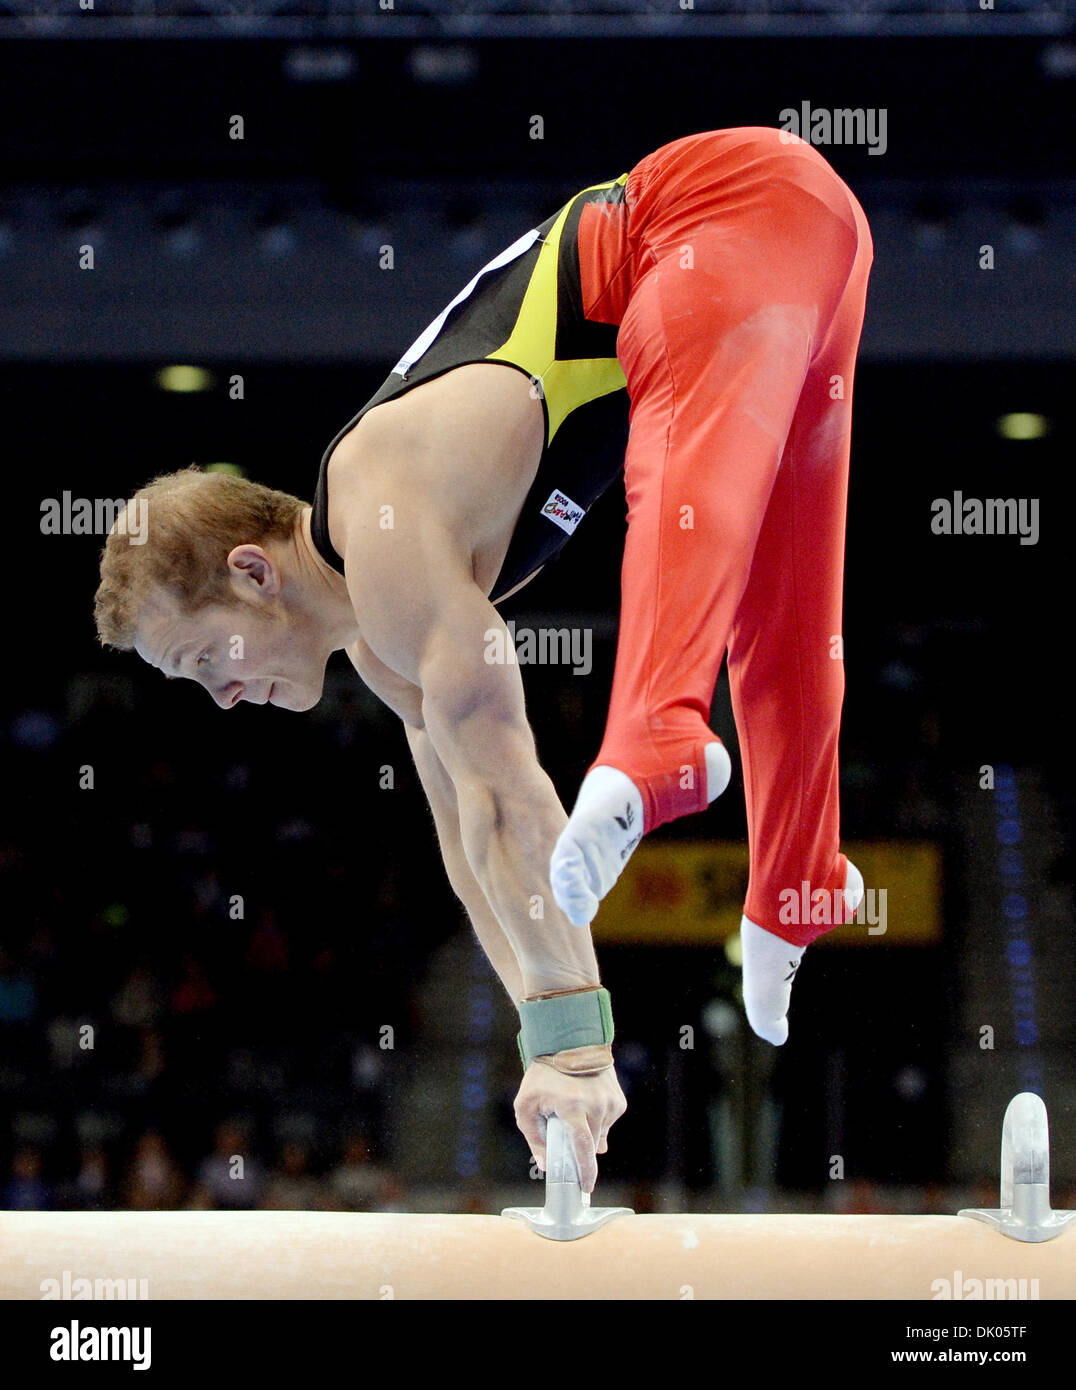 Stuttgart, Germany. 1st Dec 2013.Germany's Fabian Hambuechen at the pommel horse during the Gymnastics World Cup. Hambuechen was second placed.  Credit:  dpa picture alliance/Alamy Live News - Stock Image